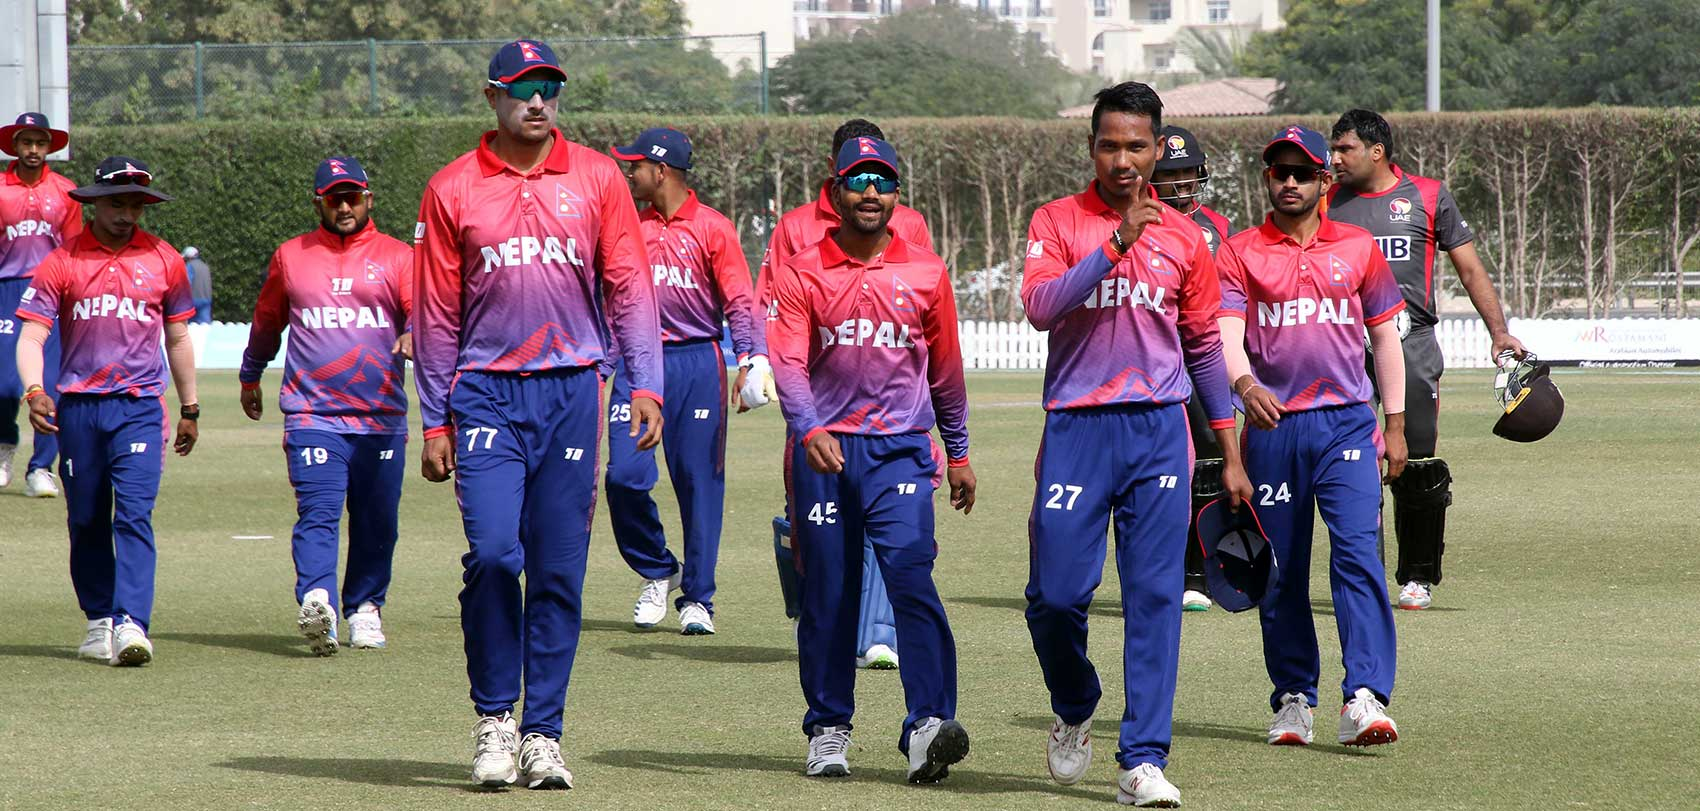 nepali cricket team on uae